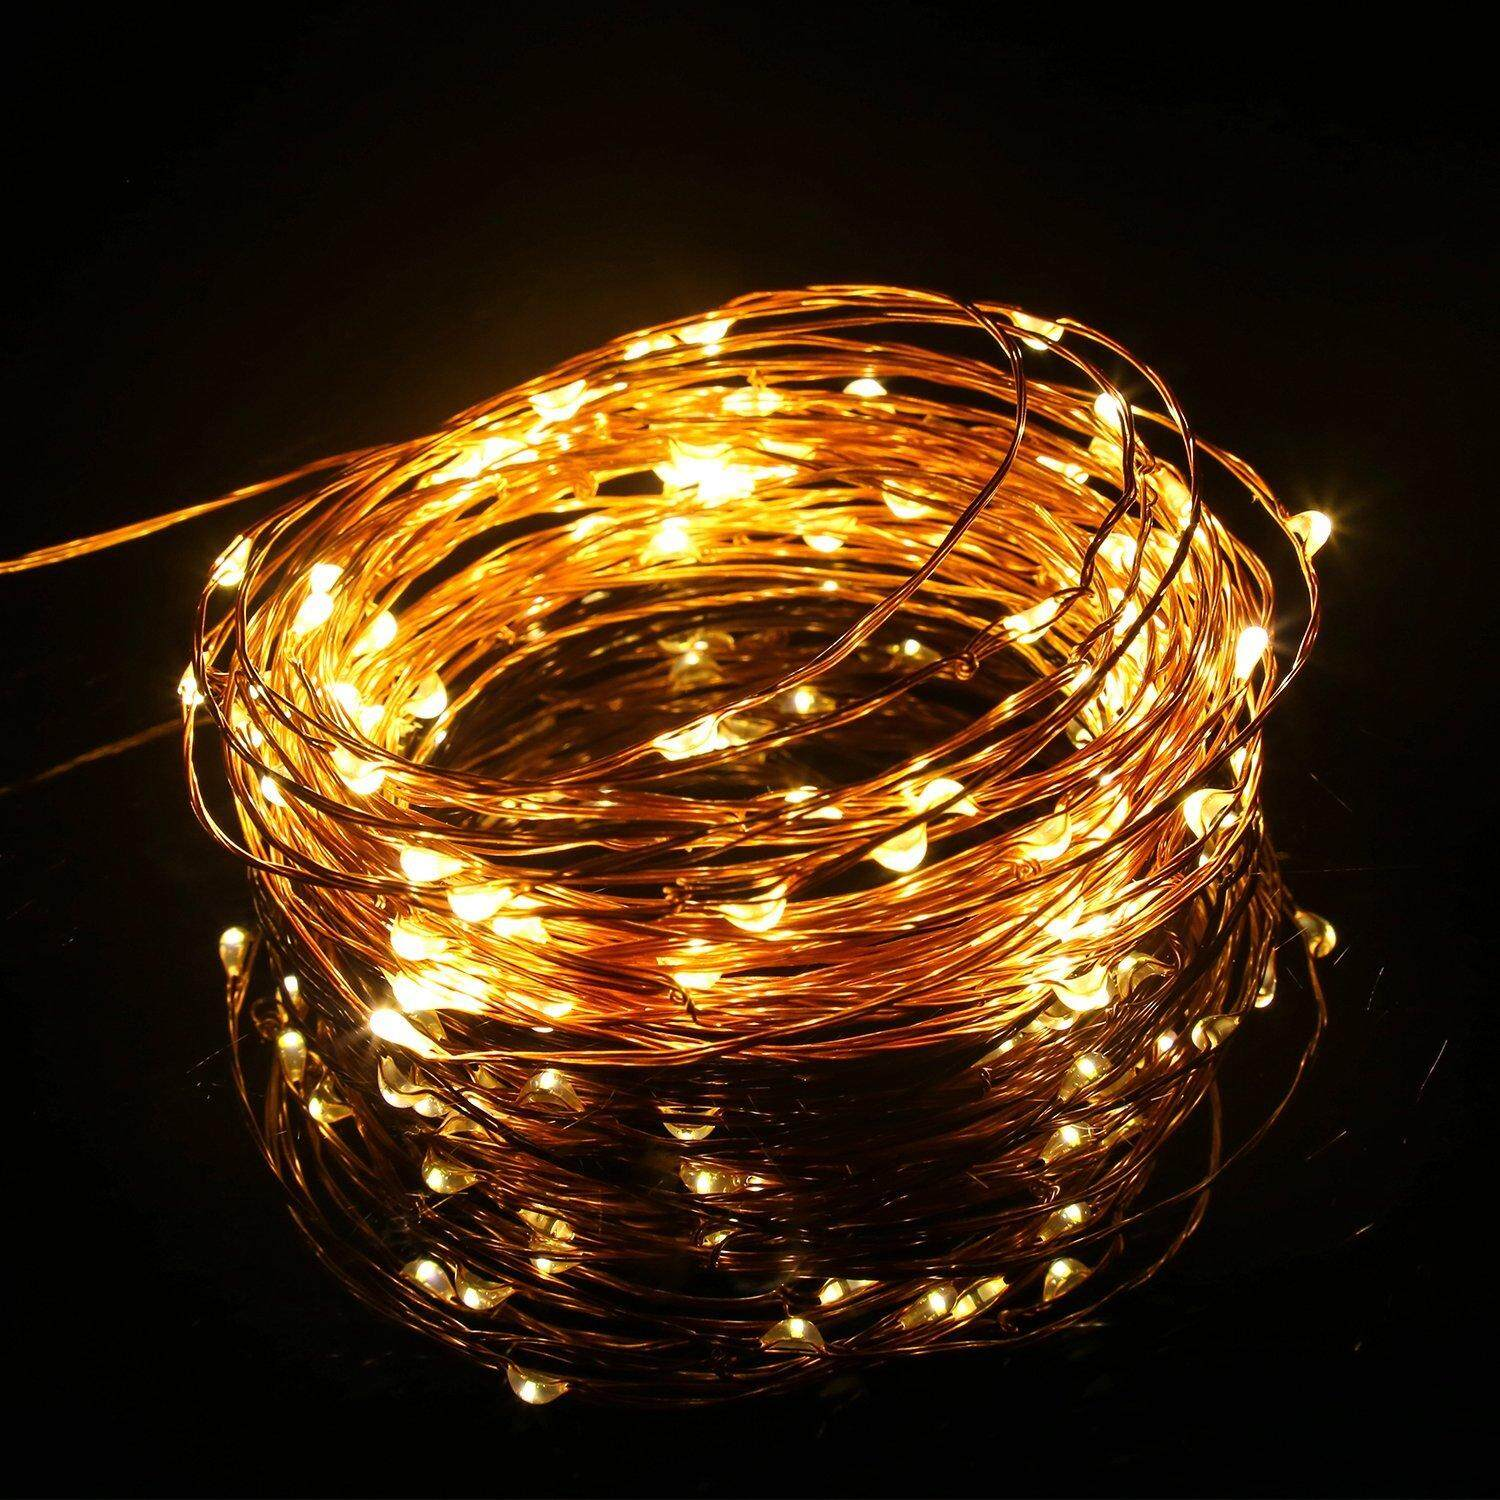 2 Meter 20 Led Battery Operated Silver / Copper Wire Christmas Decoration Fairy Light, Warm White (Starzdeals.my)